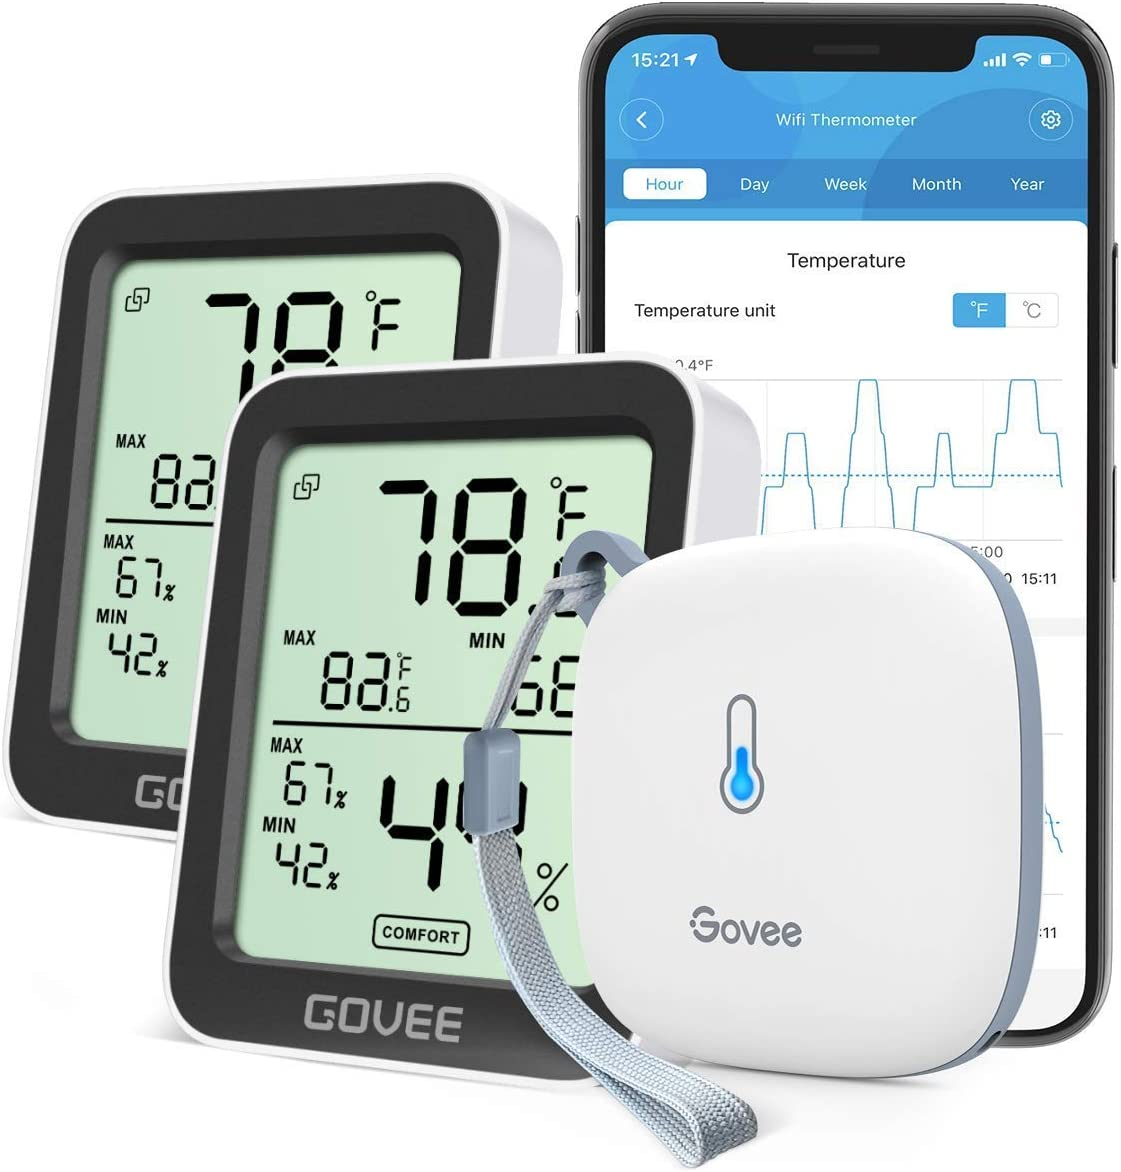 Govee Hygrometer Thermometer with Temp Humidity Monitor, Notification Alert, 2 Year Data Storage